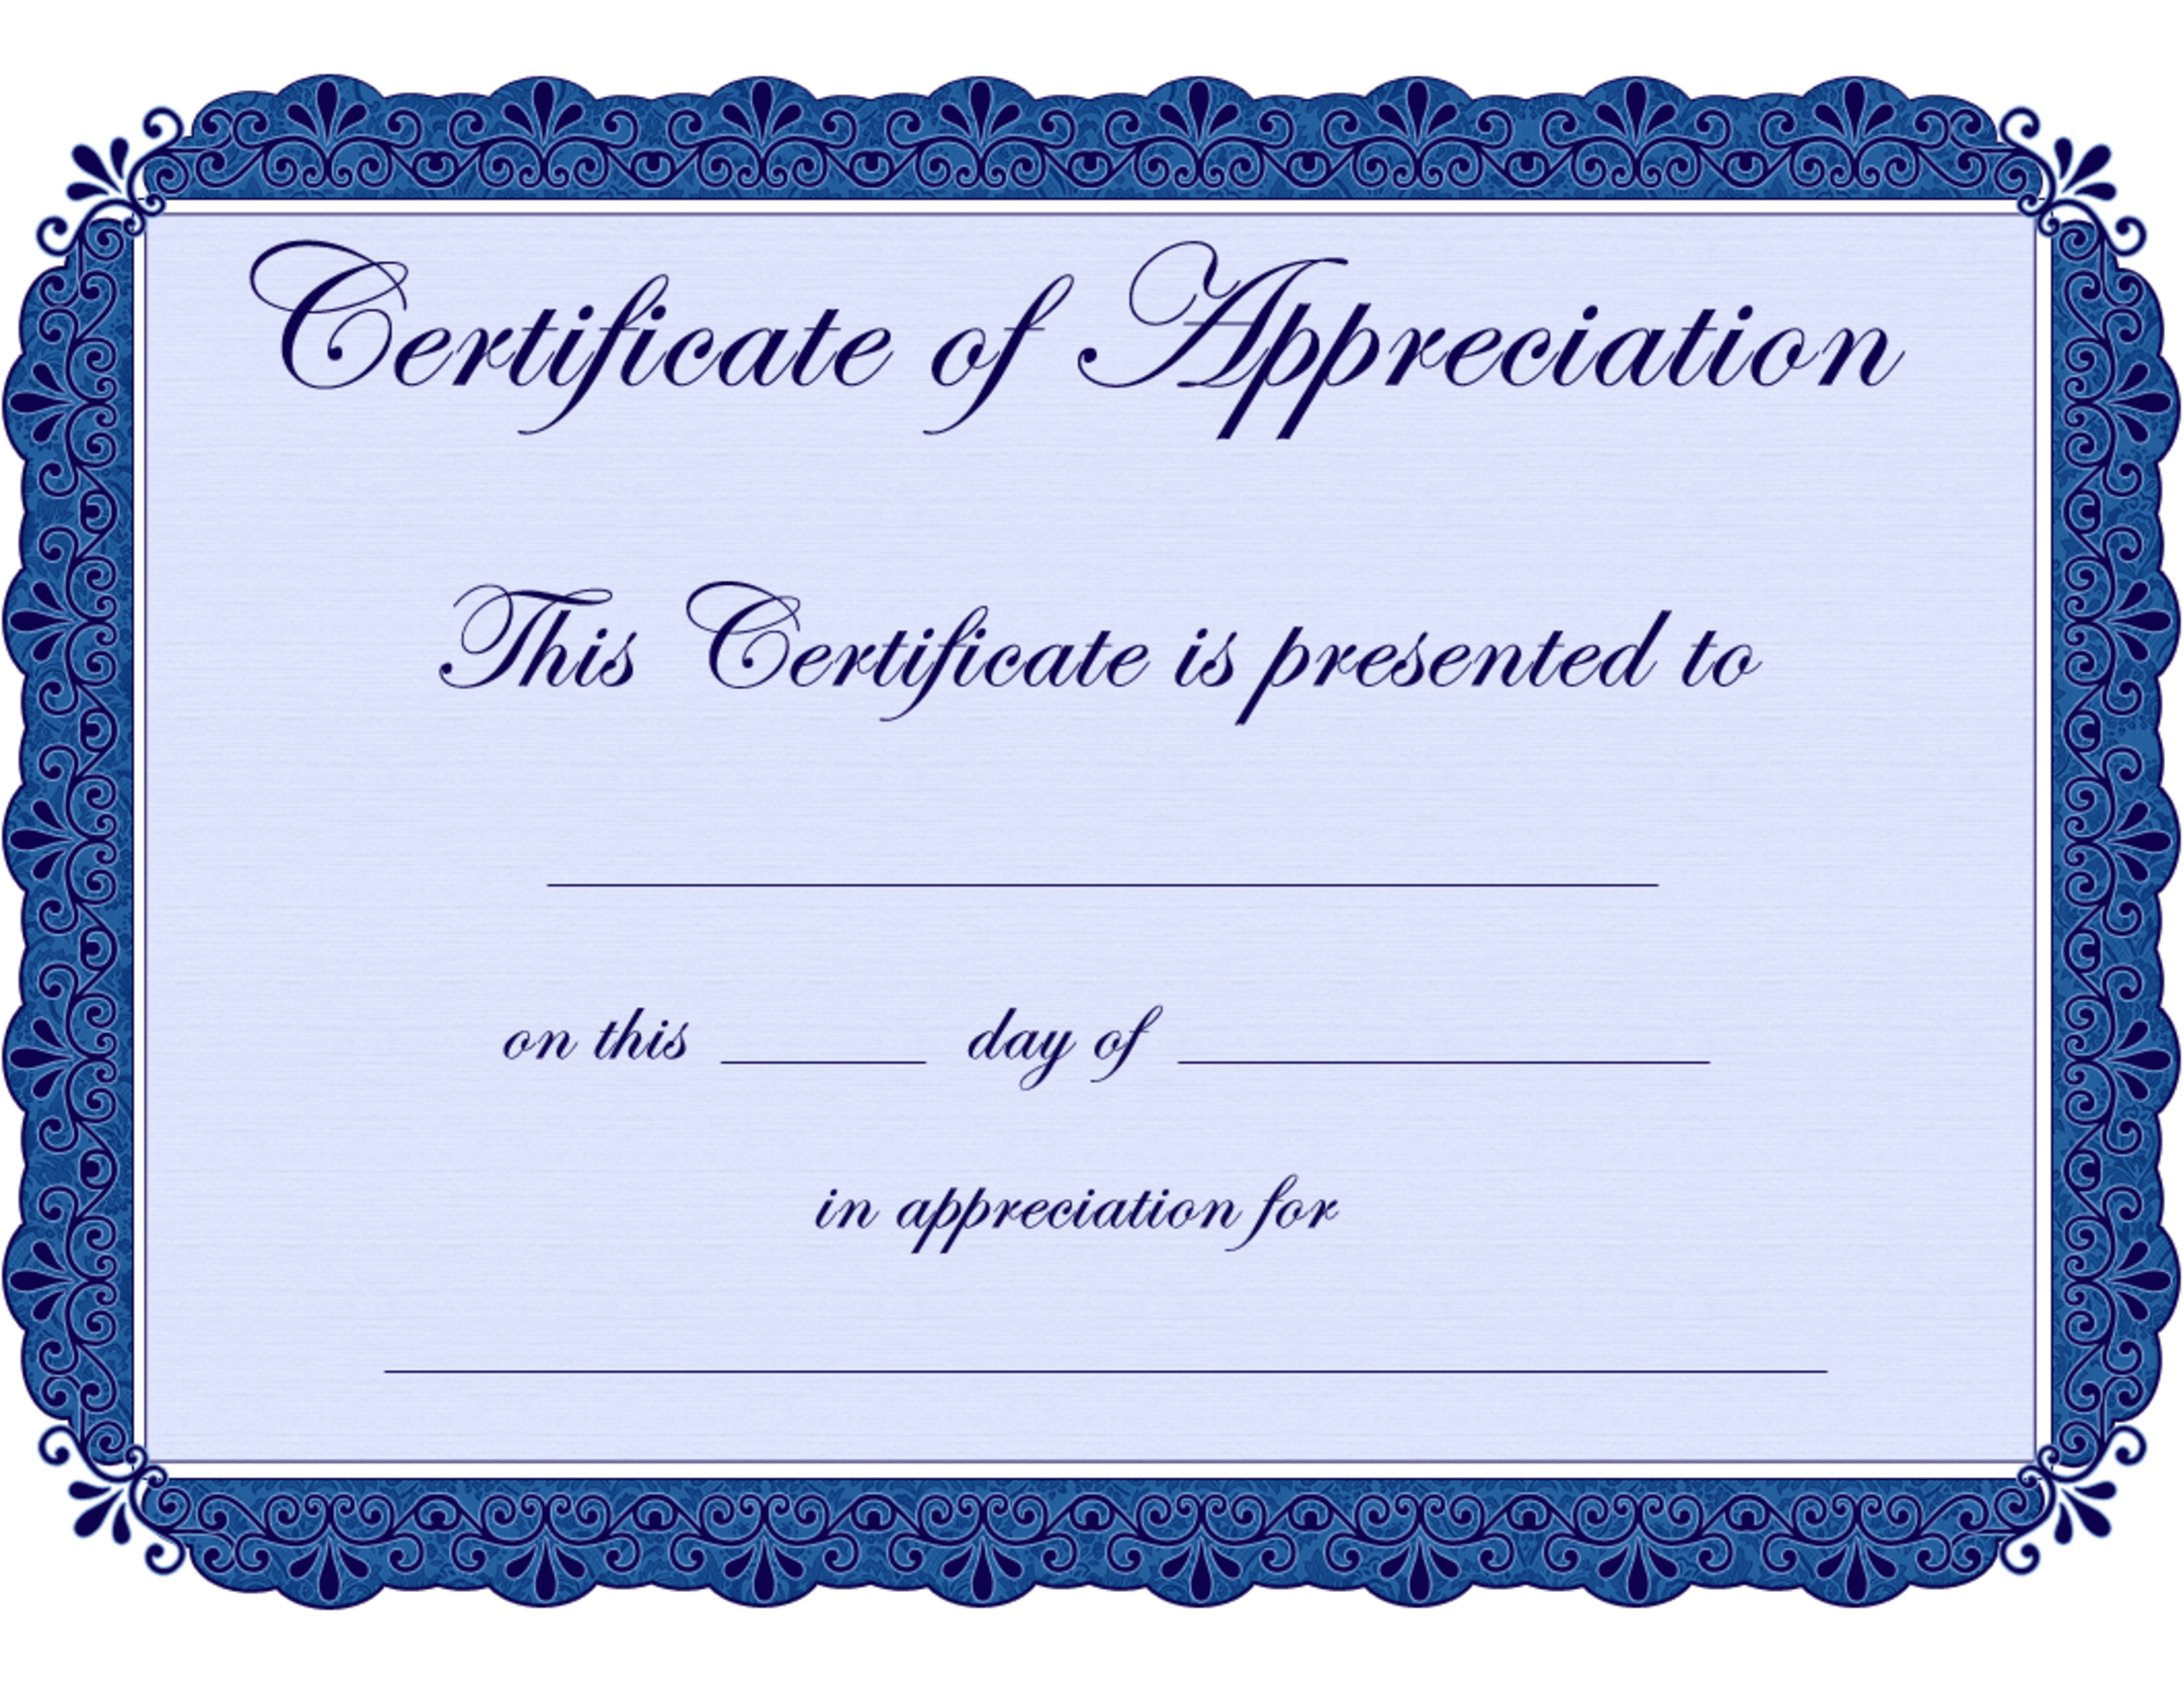 Free Printable Certificates Certificate Of Appreciation Certificate - Free Printable School Certificates Templates